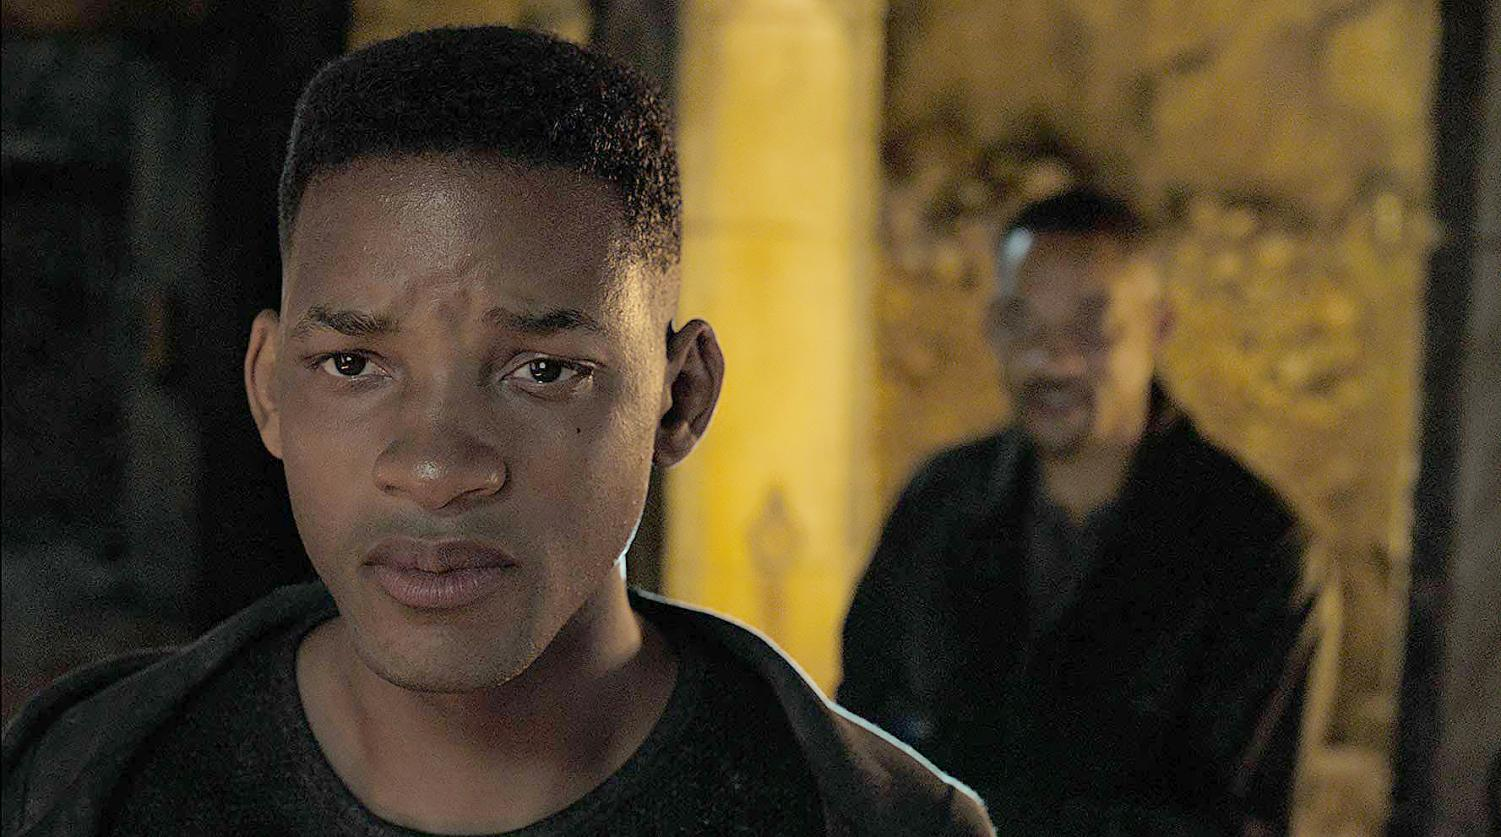 'Gemini Man' starring Will Smith, shows a new way to film movies, in a way that has never been done before in cinematic history.